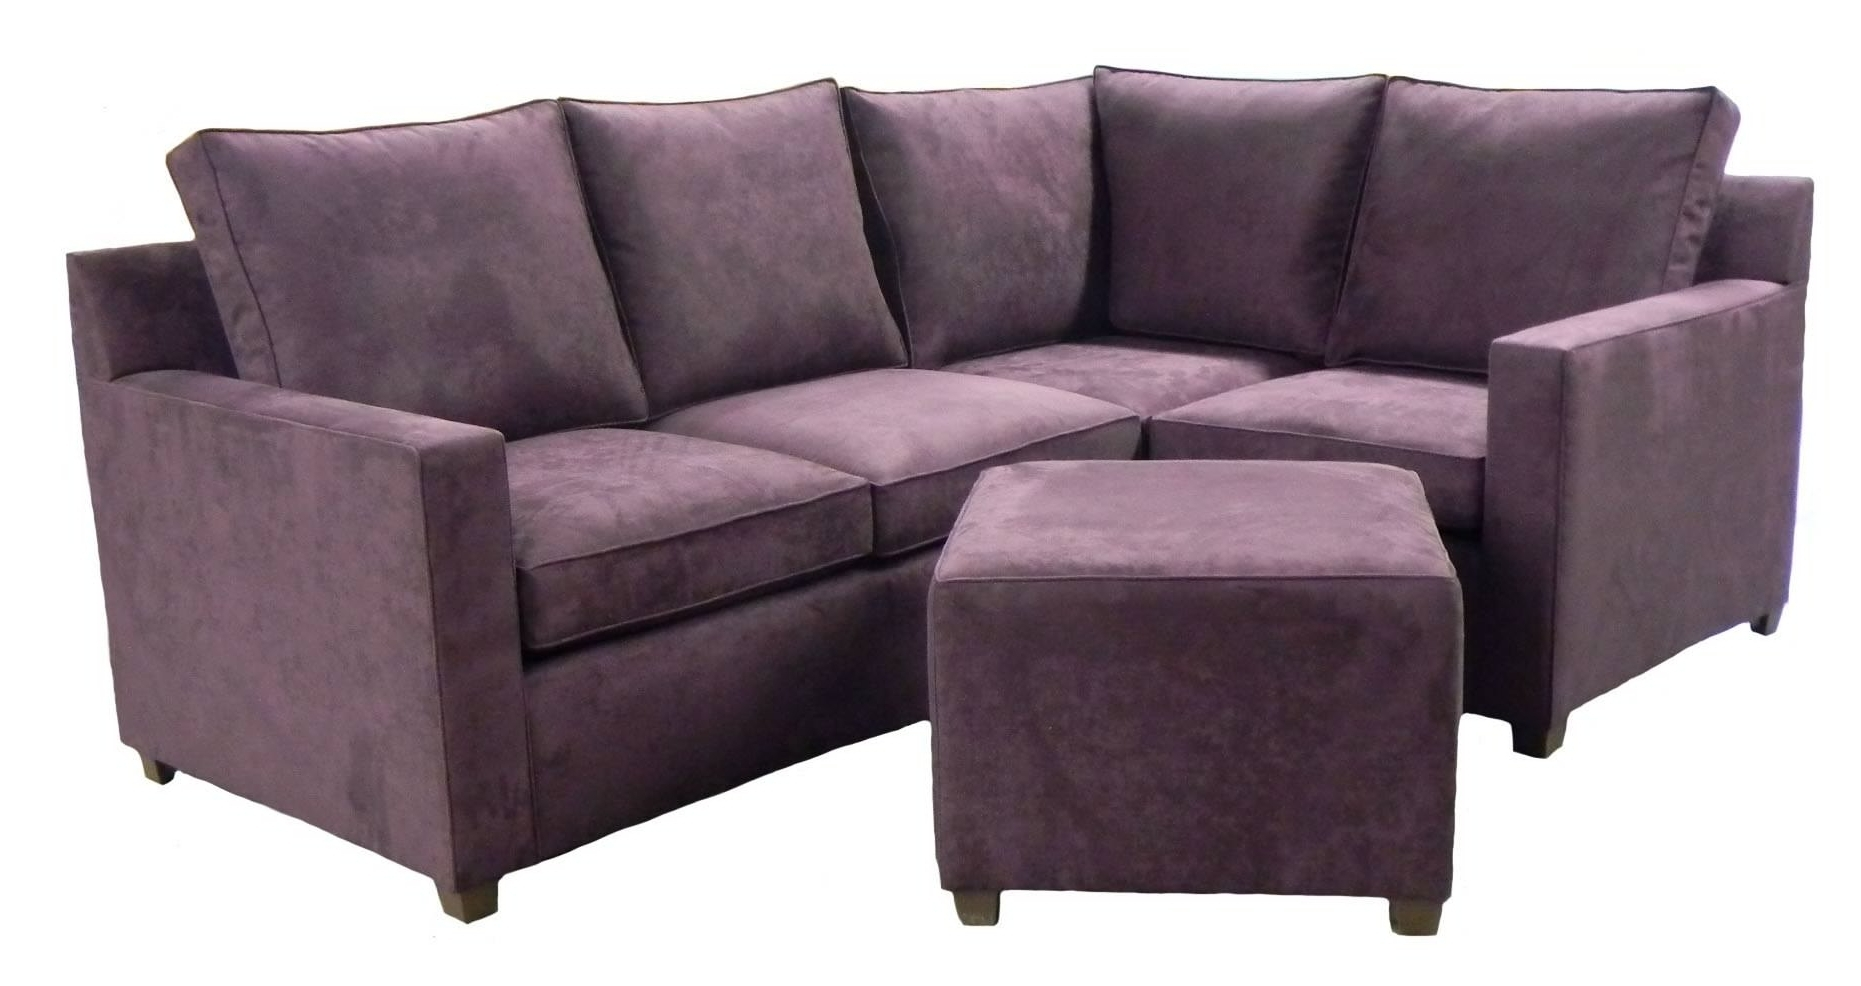 Sectional Sofa Design: Apartment Size Sectional Sofa With Chaise With Well Known Apartment Size Sectionals With Chaise (View 12 of 15)